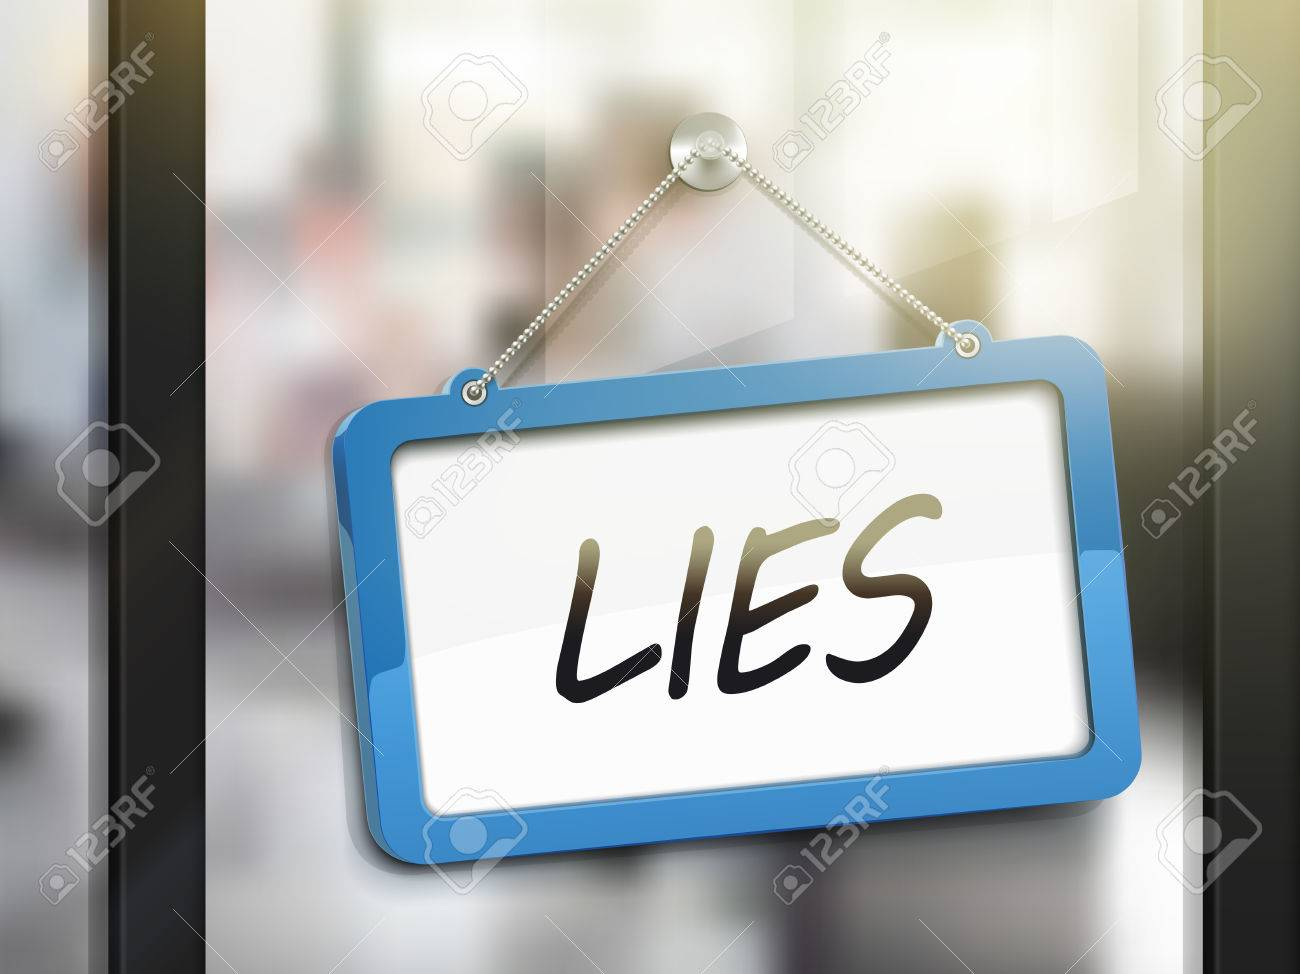 Lies Hanging Sign 3d Illustration Isolated On Office Glass Door